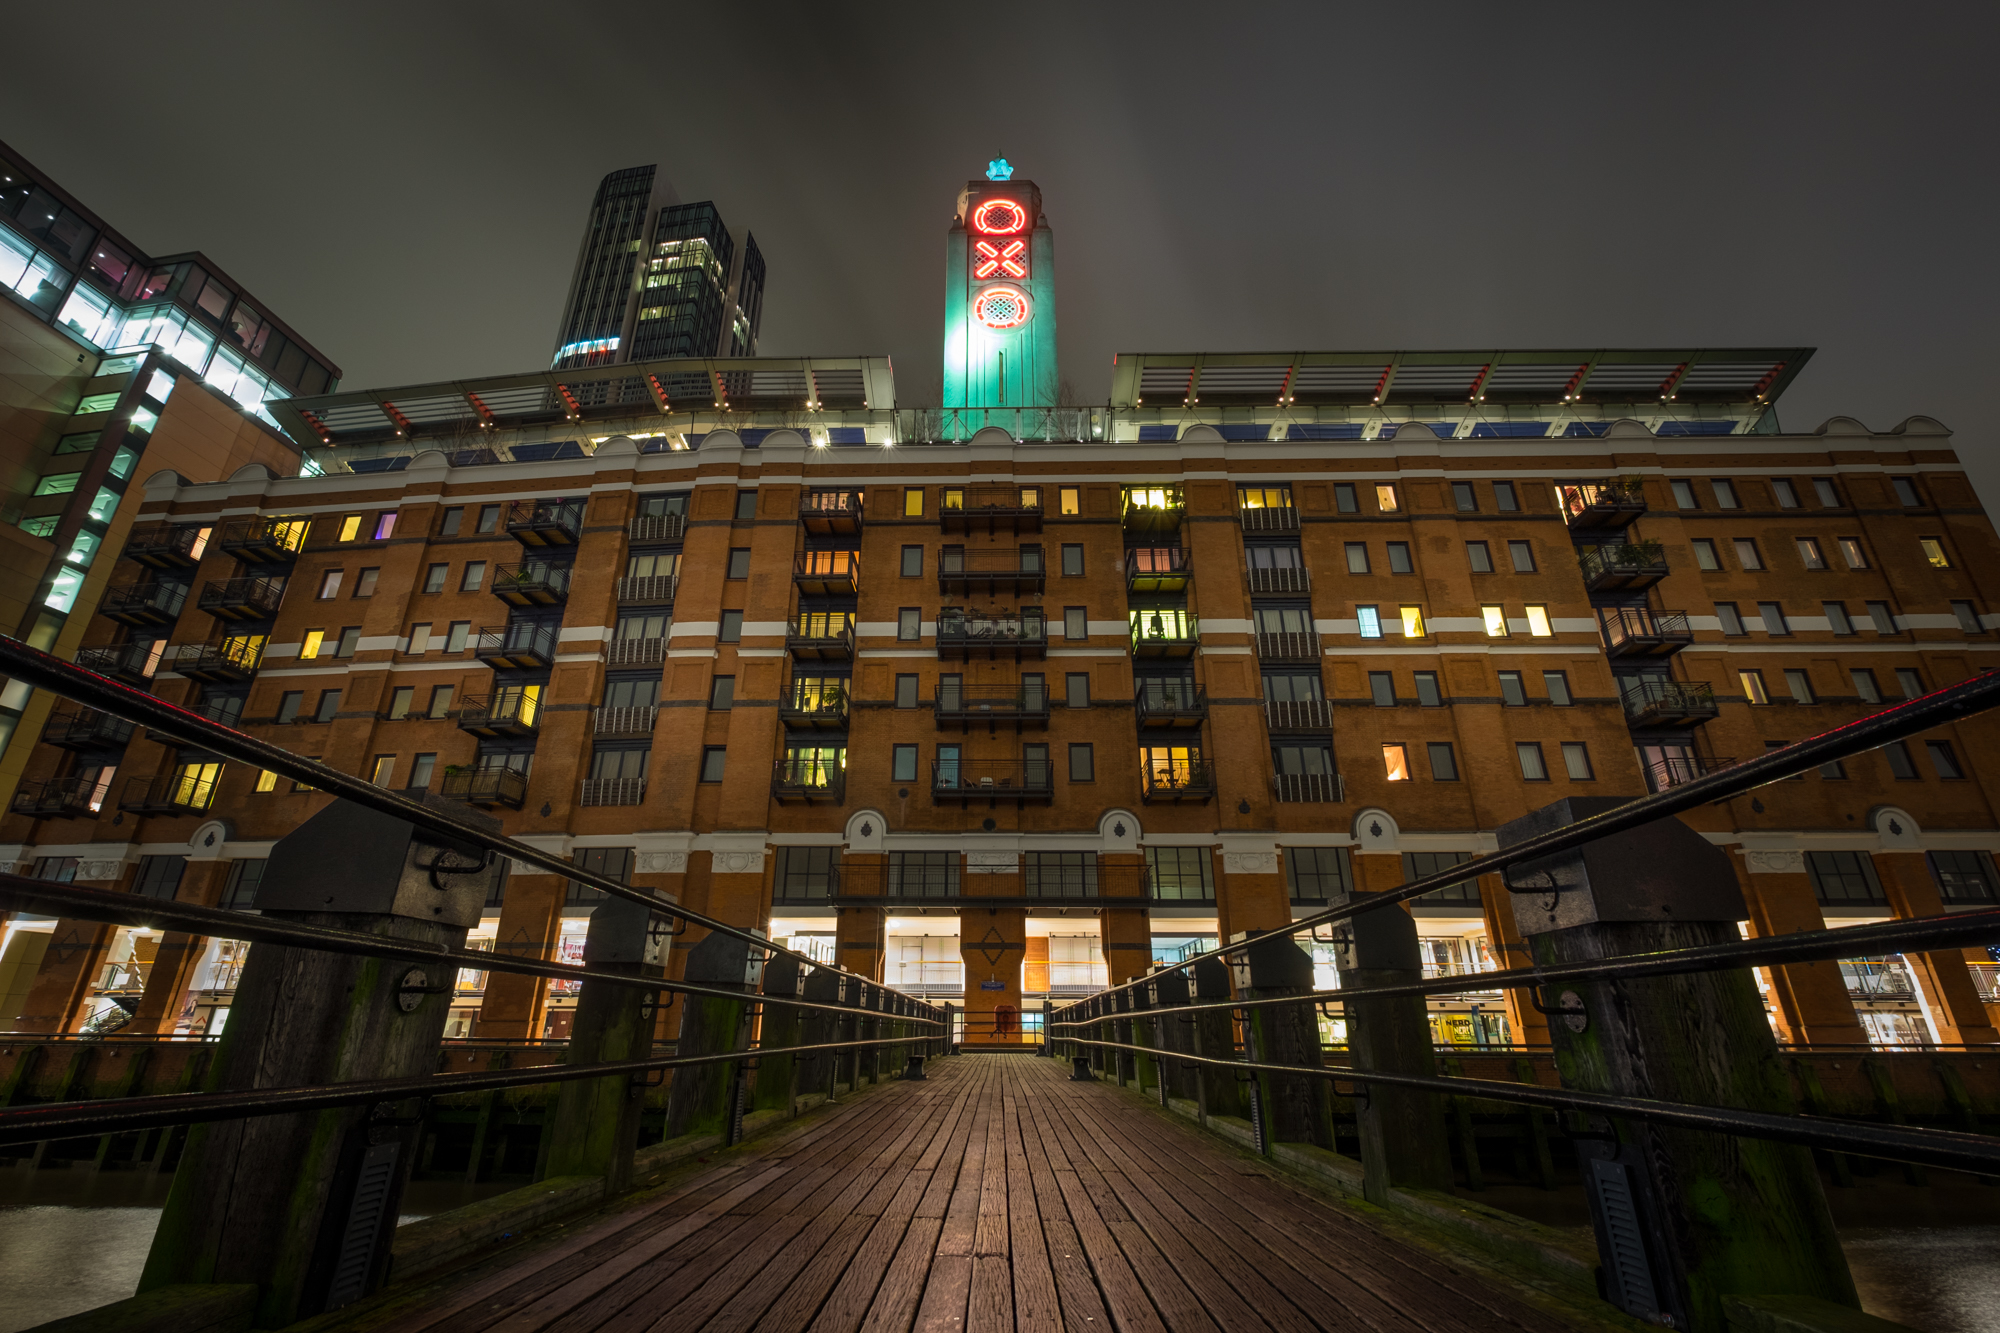 Photo of the Oxo Tower at night taken by Trevor Sherwin